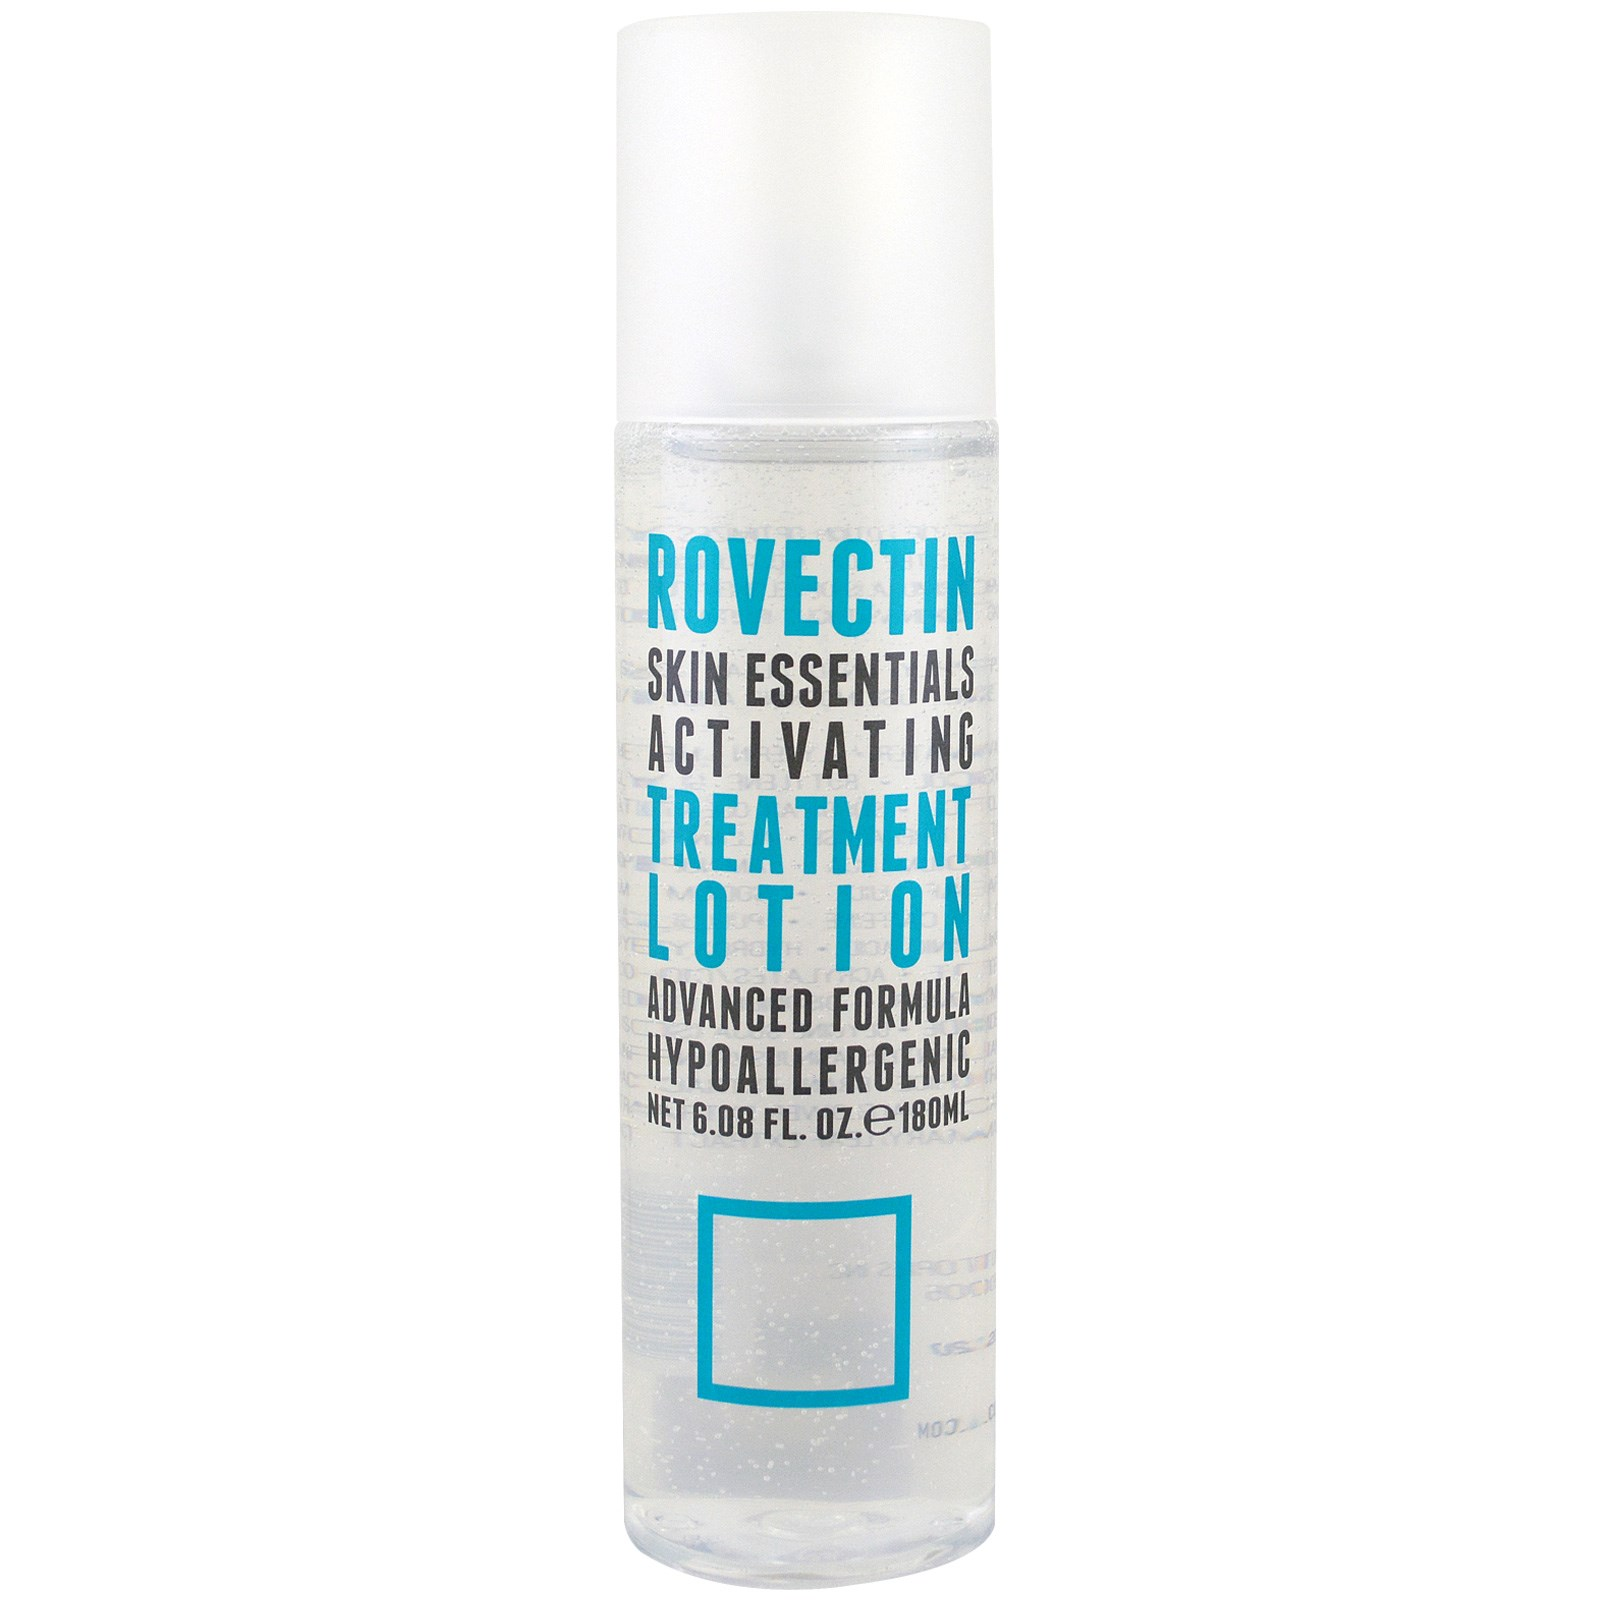 Rovectin Skin Essentials Activating Treatment Lotion 608 Fl Oz Humphrey Care Activated Charcoal Bodywash 500ml 180 Ml